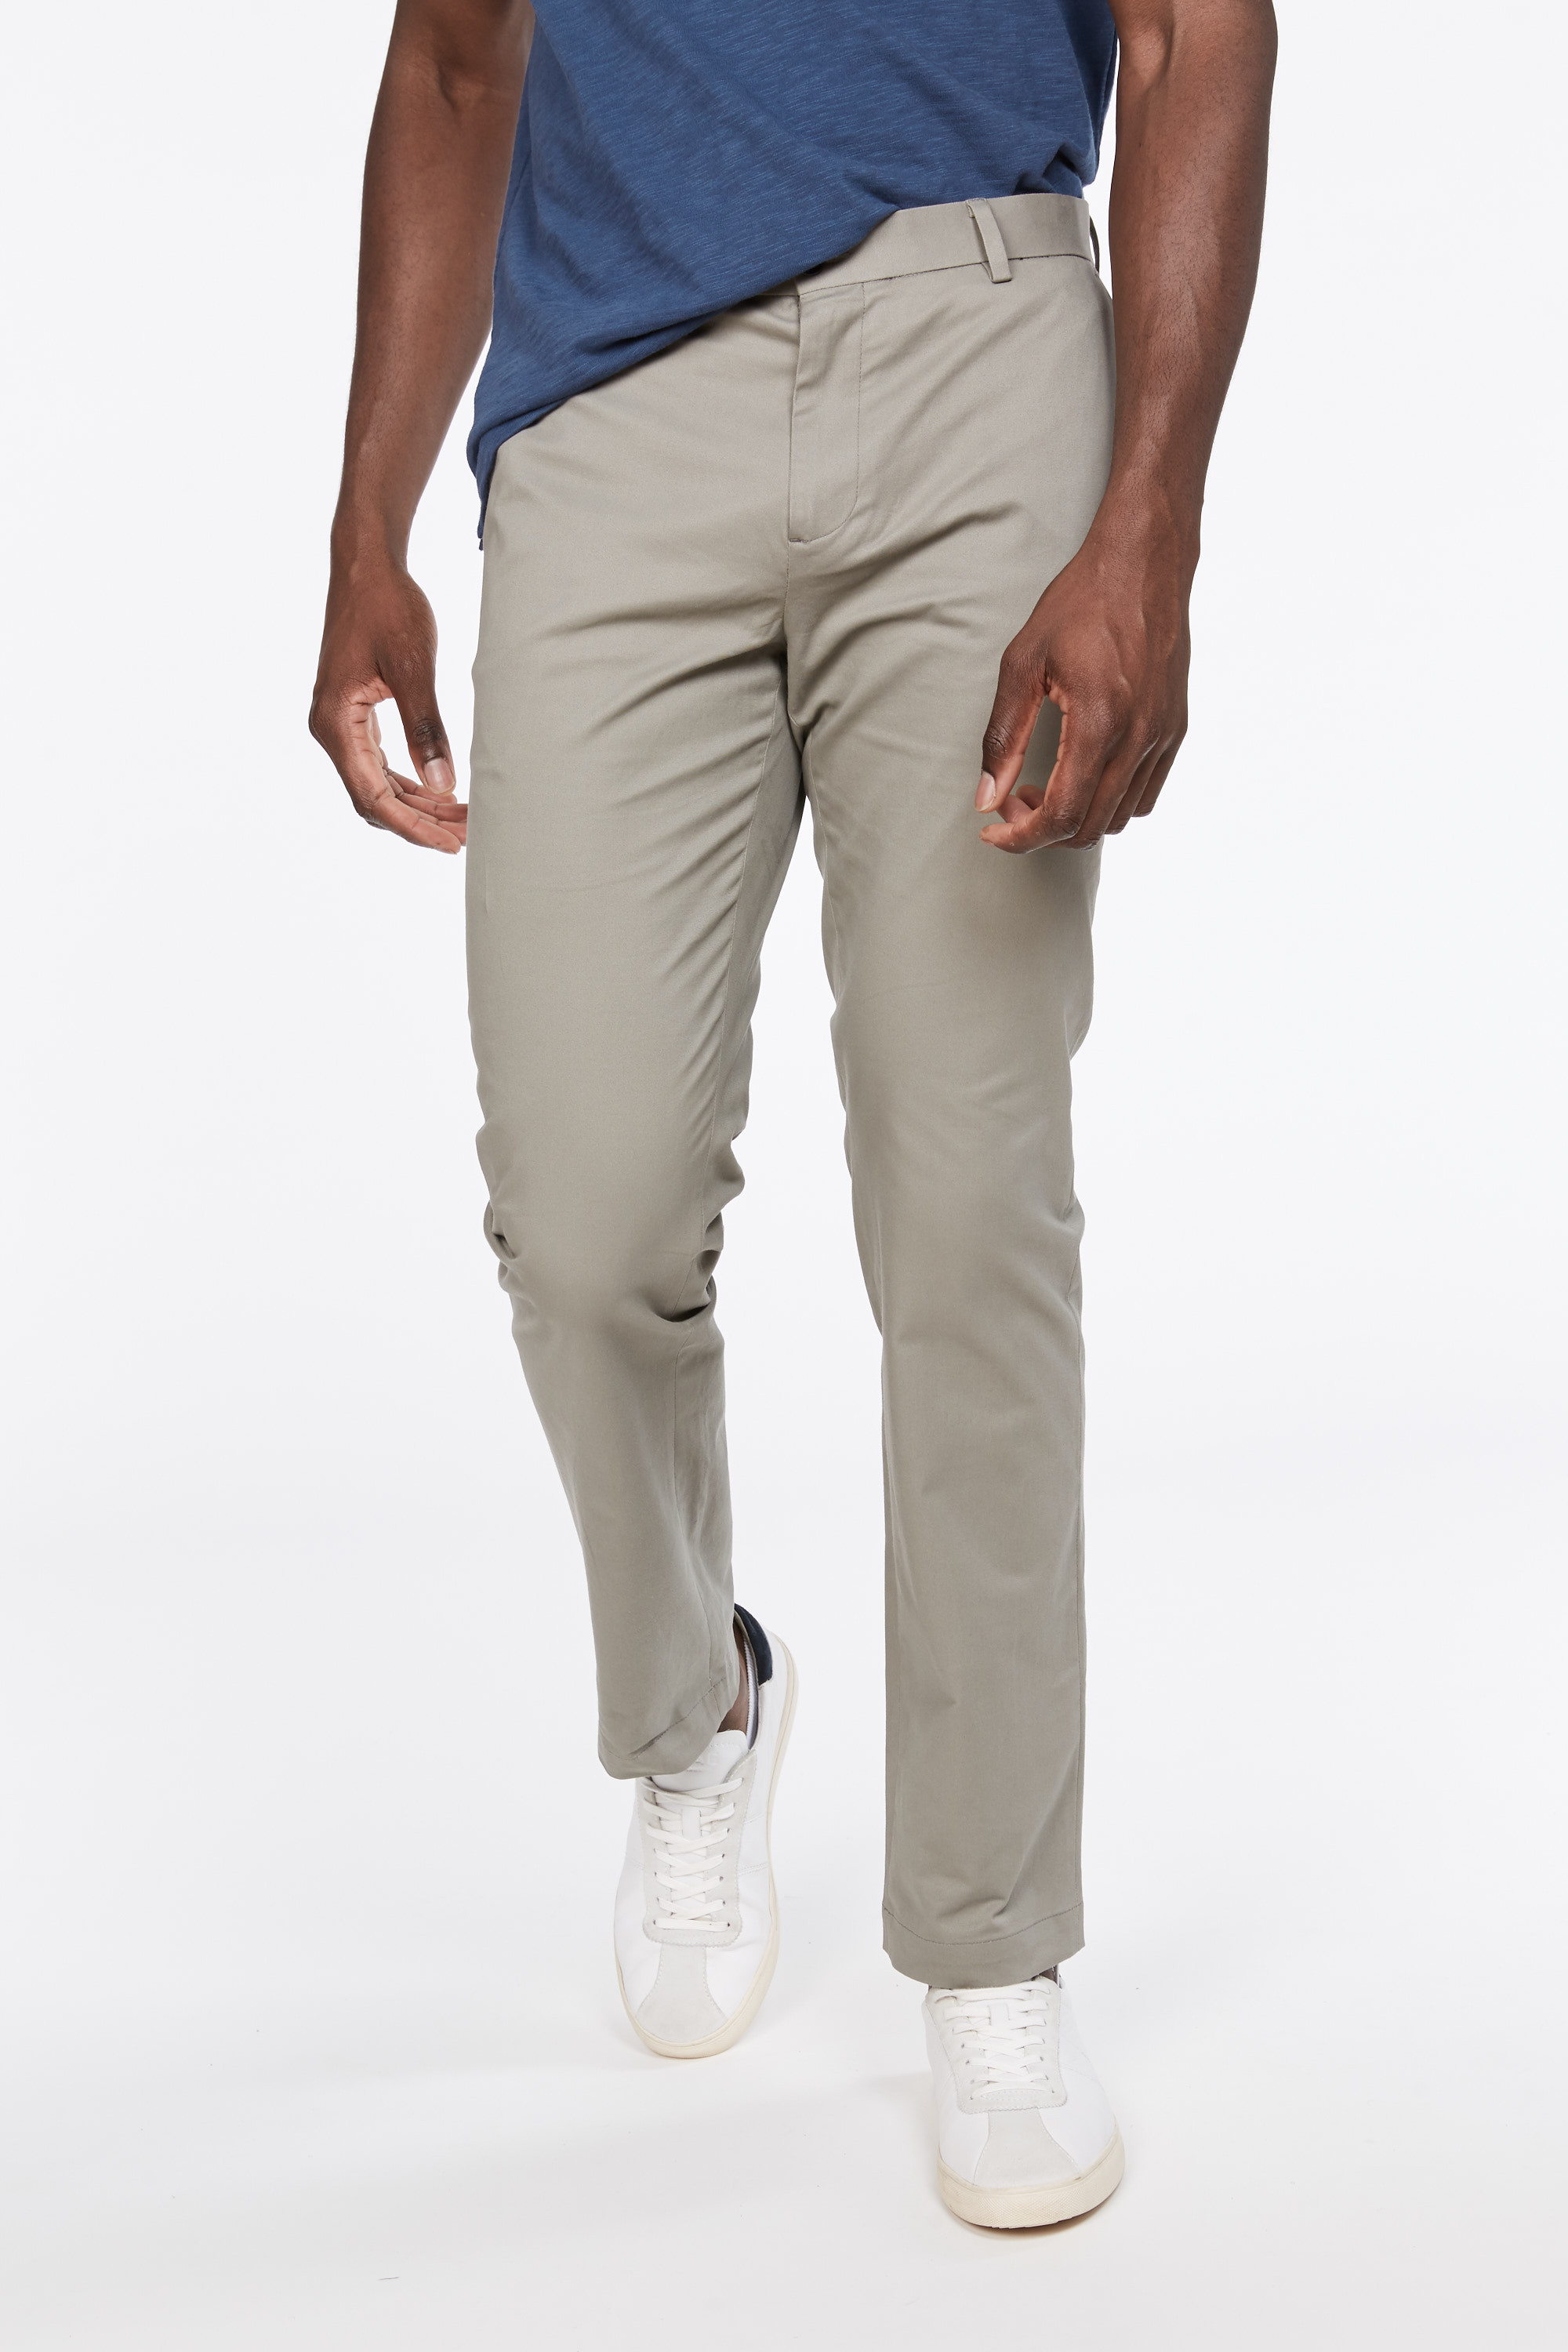 Citra Cotton Pant